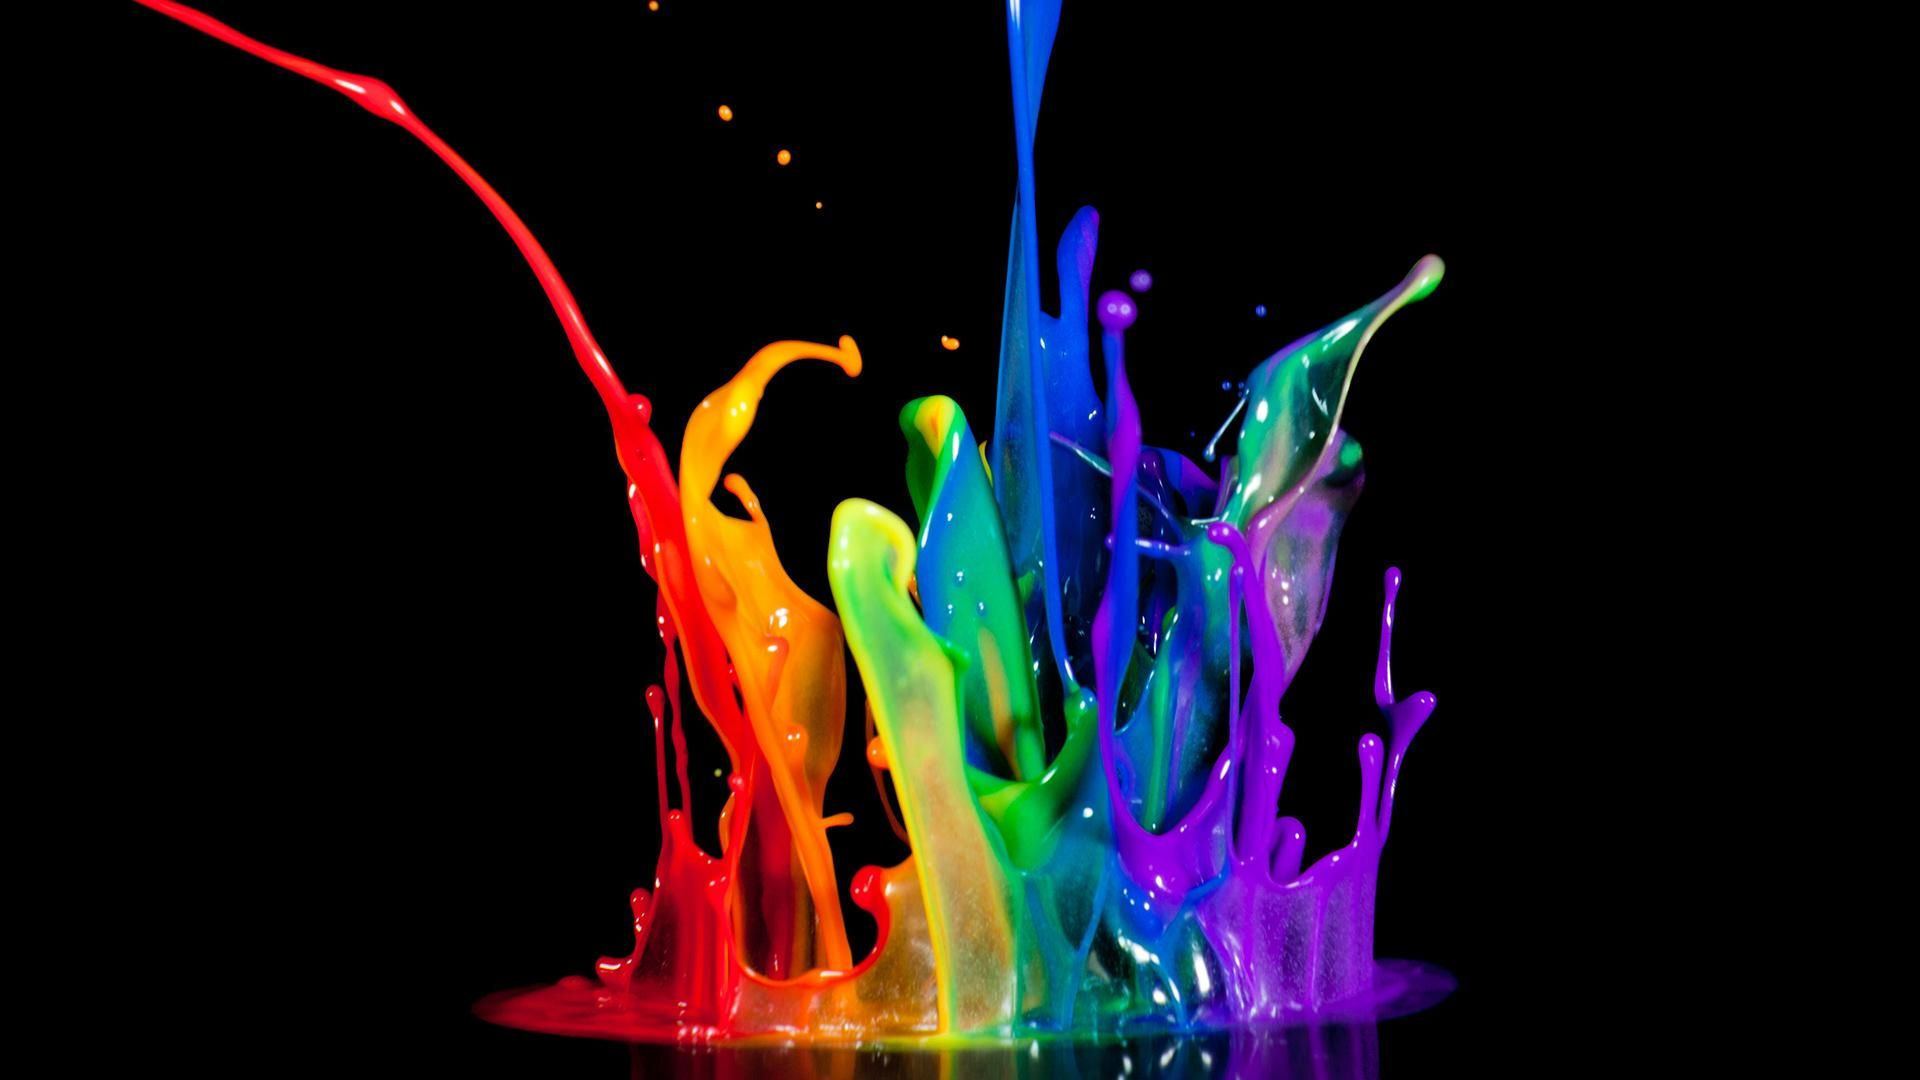 Rainbow Water Wallpaper For Chromebook Cool Backgrounds Rainbow Wallpaper Best Background Images